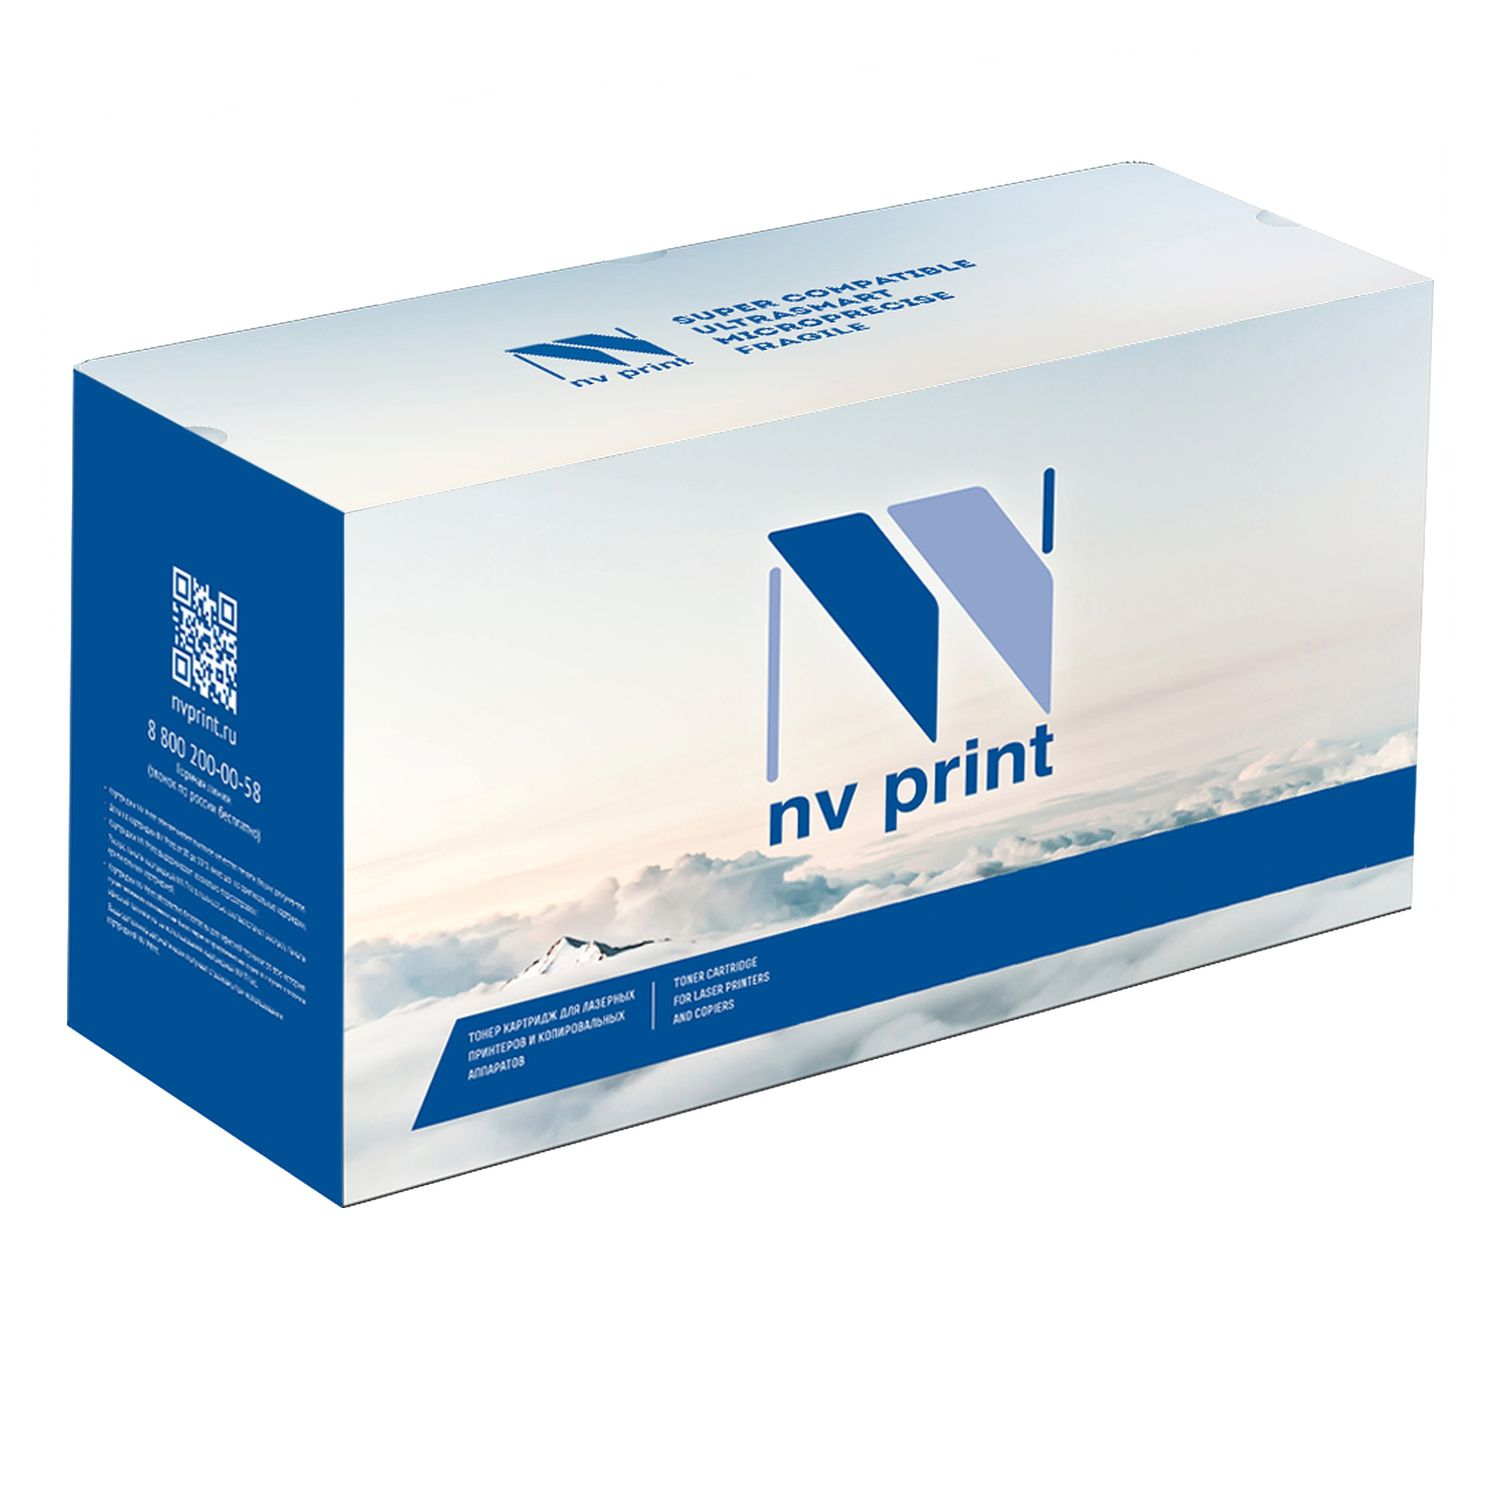 Картридж NV Print совместимый NV-TK-8115 Yellow для Kyocera EcoSys-M8124/EcoSys-M8130 (6000k) картридж nv print 51b5000t для lexmark совместимый